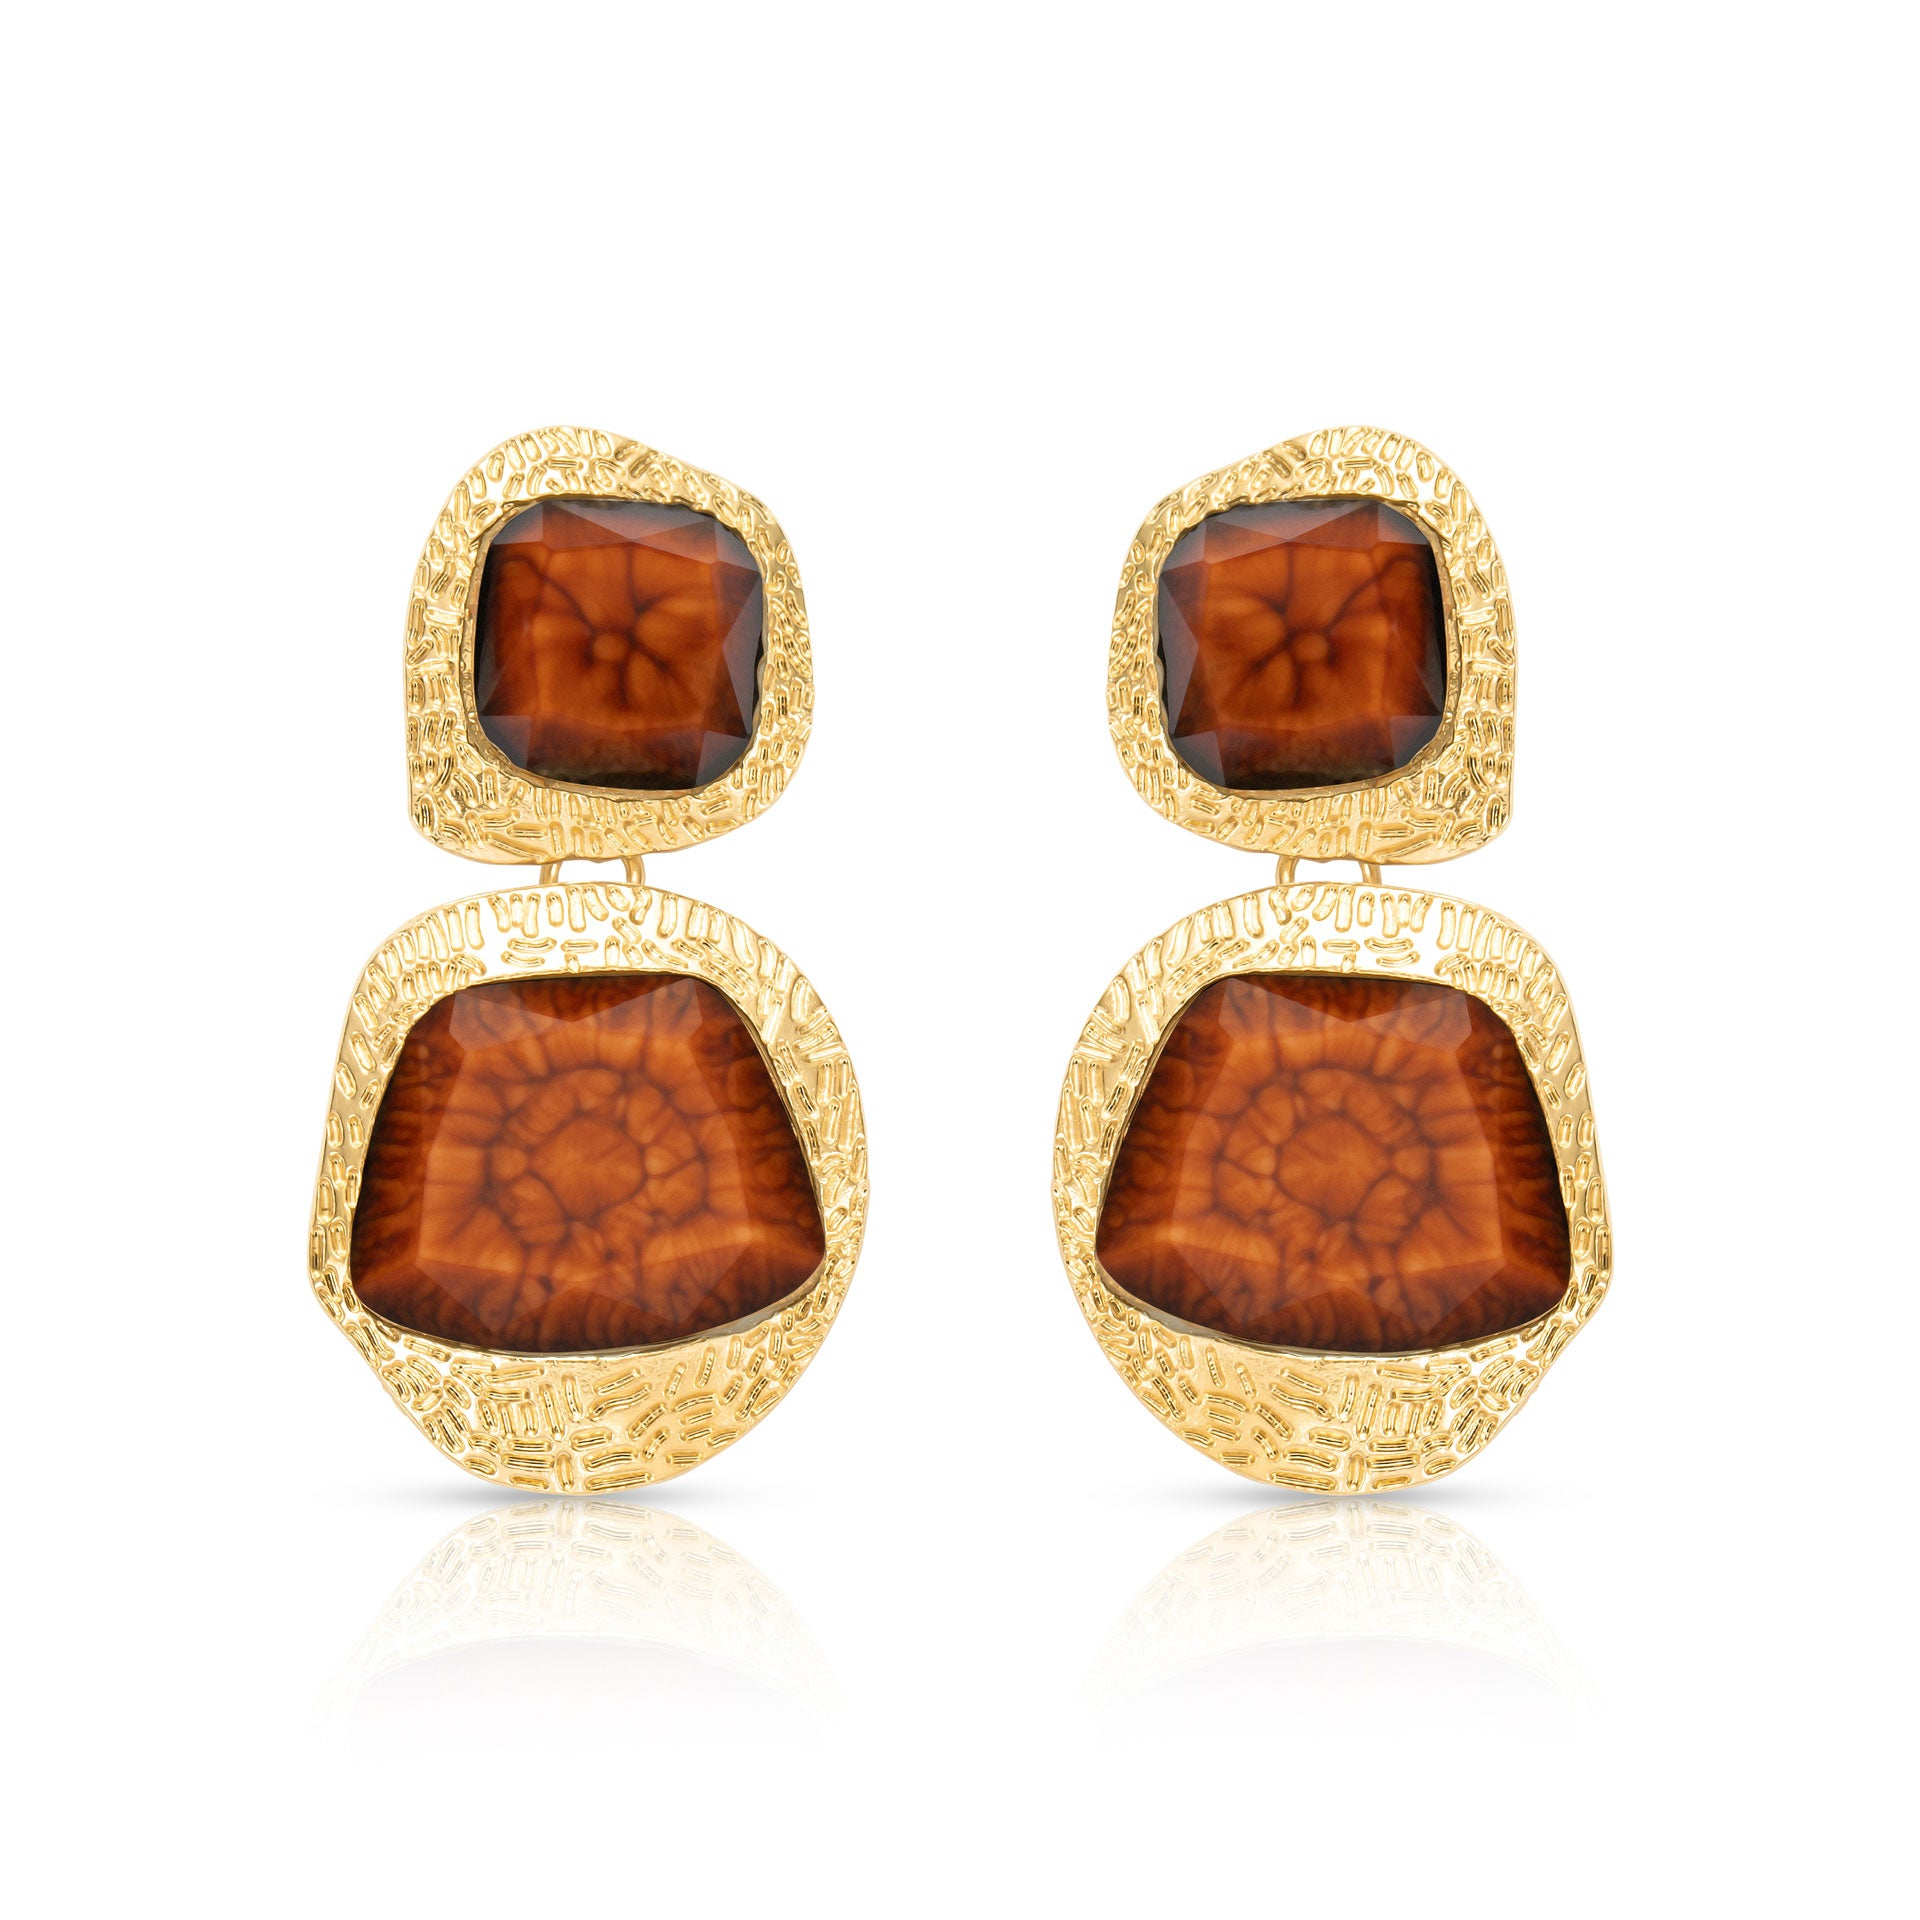 THE GIORGIA EARRINGS